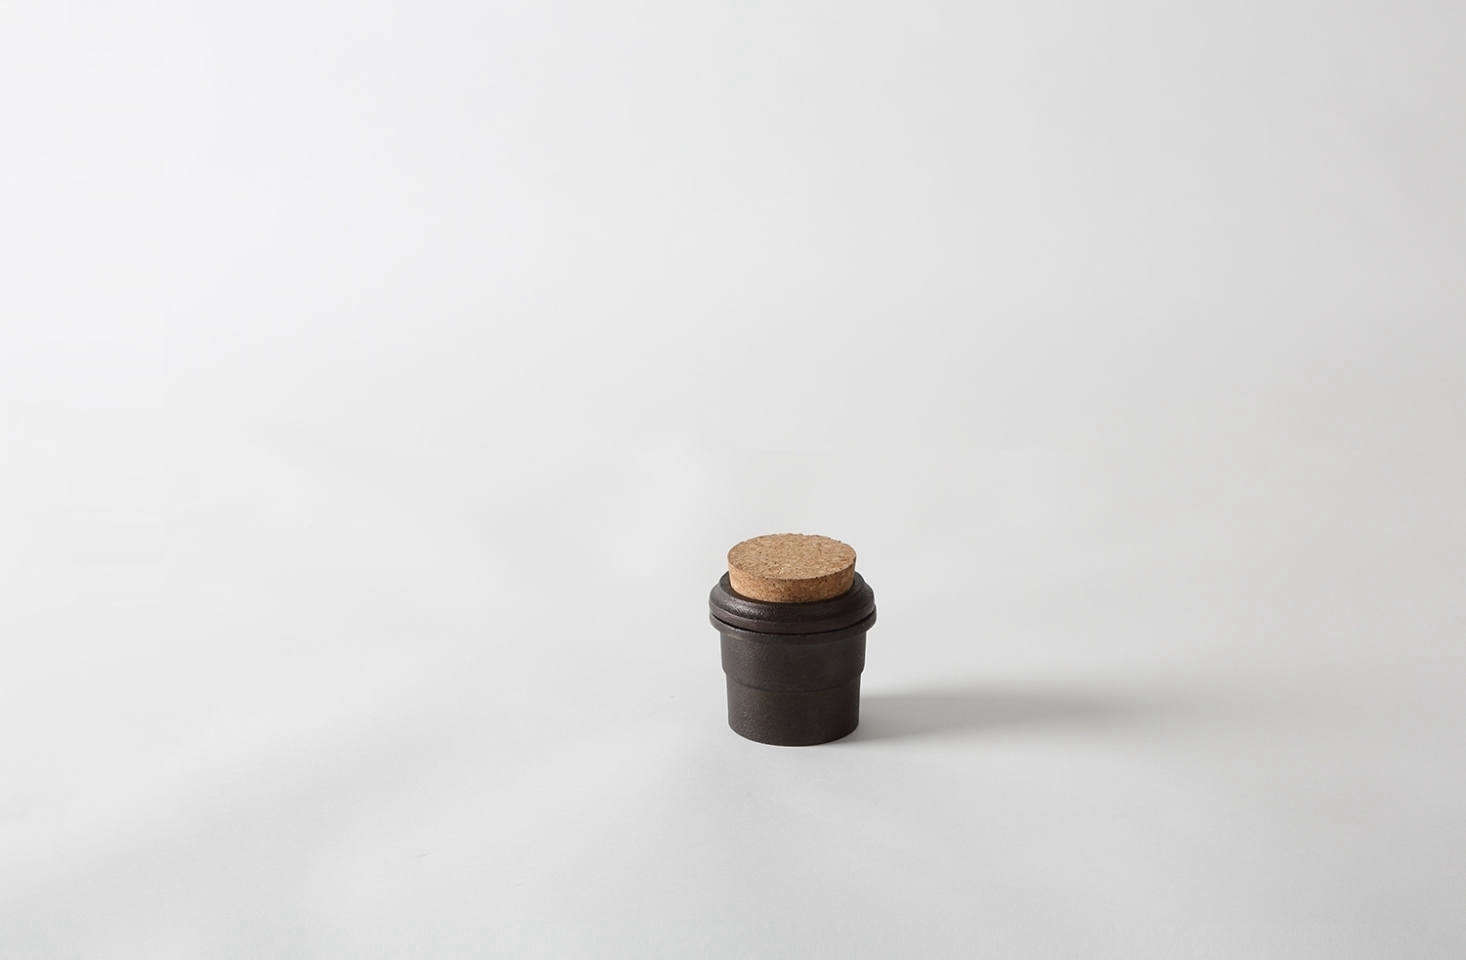 The Skeppshult Cast Iron Spice Grinder with cork top is $60 via March.